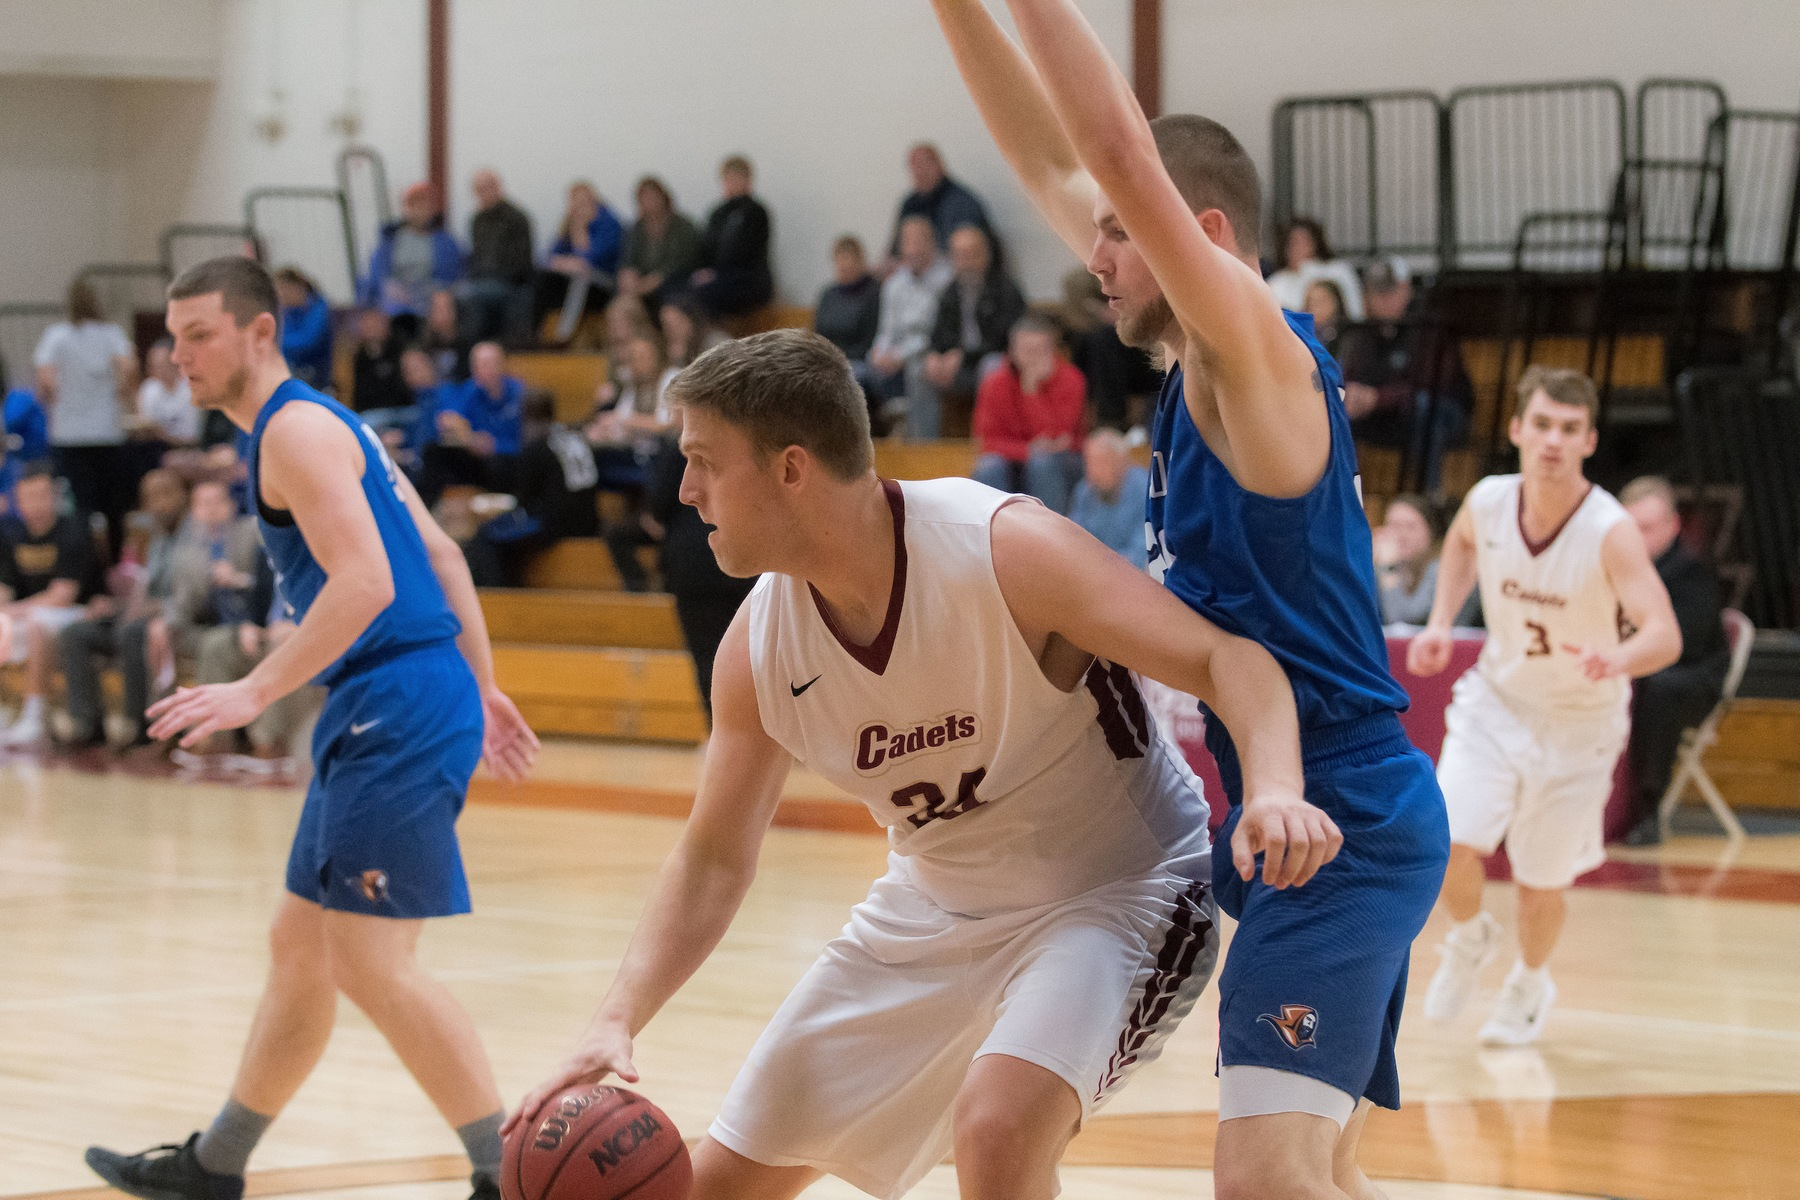 Men's Basketball: Cadets rout Raiders, 84-51